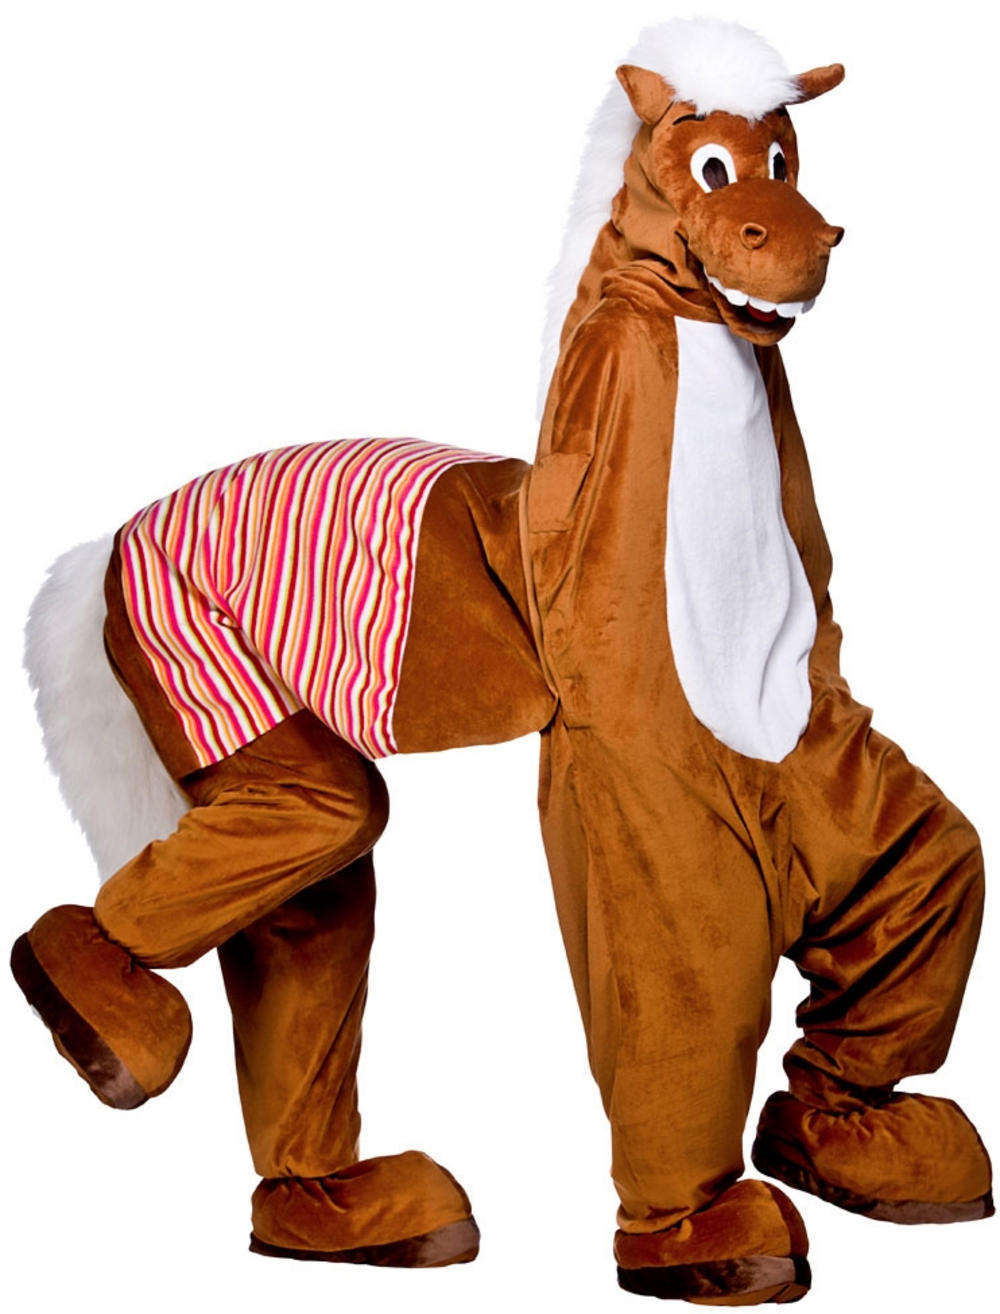 2 Man Pantomime Horse Costume